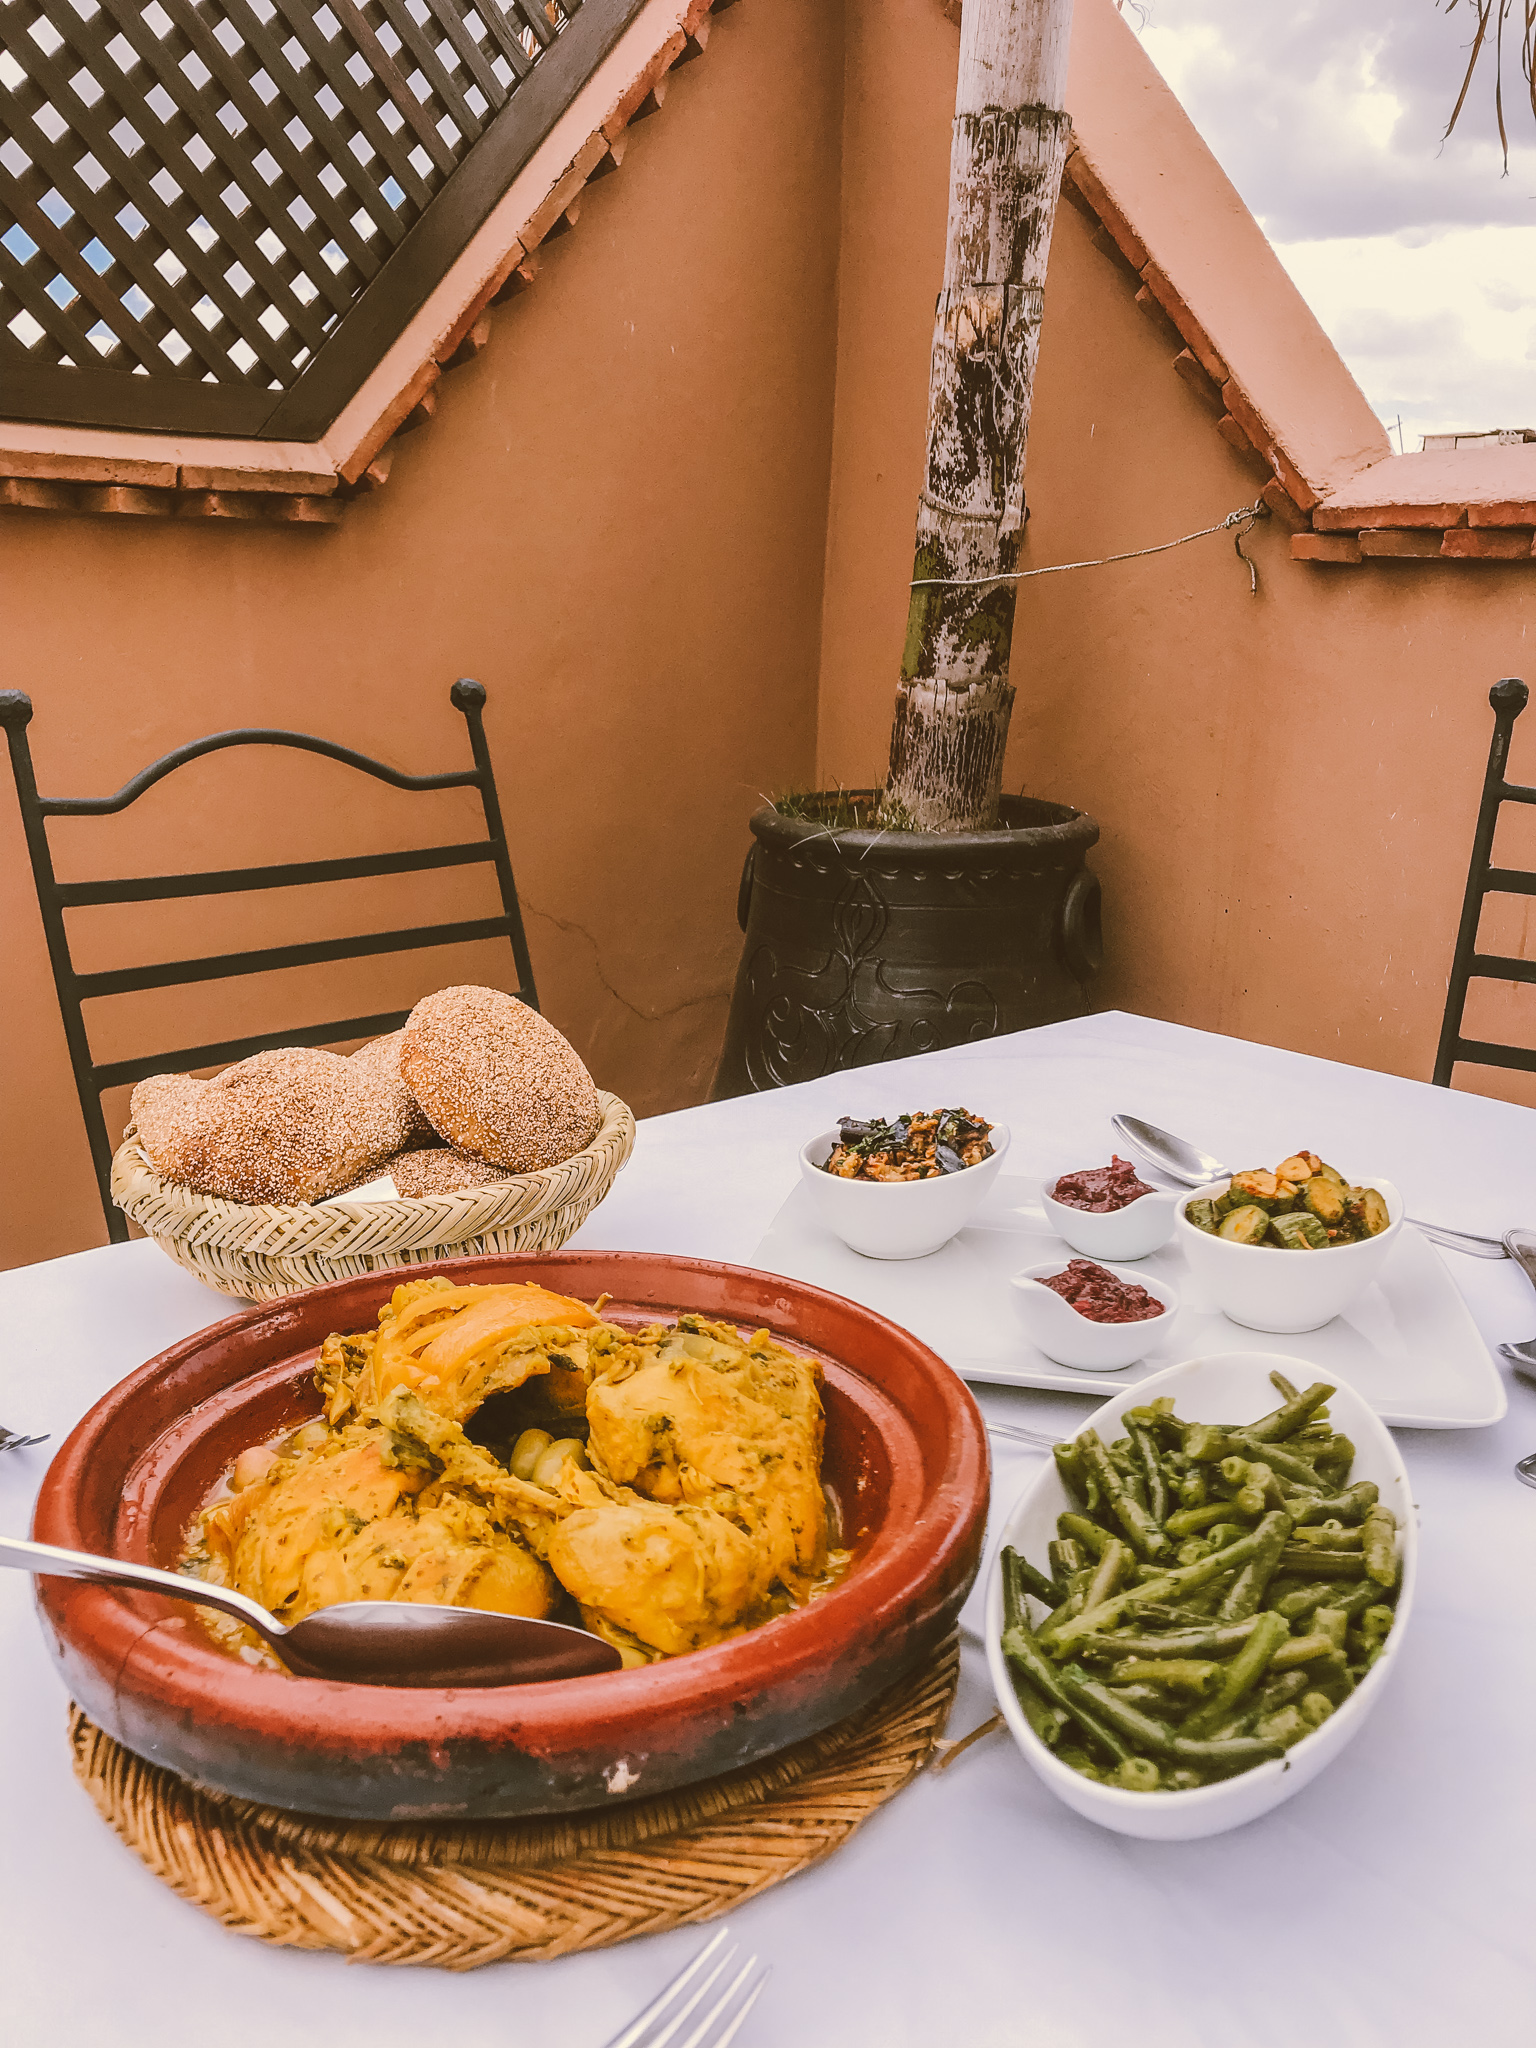 The Foodies Guide to Restaurants in Marrakech Medina- Monique McHugh Blog